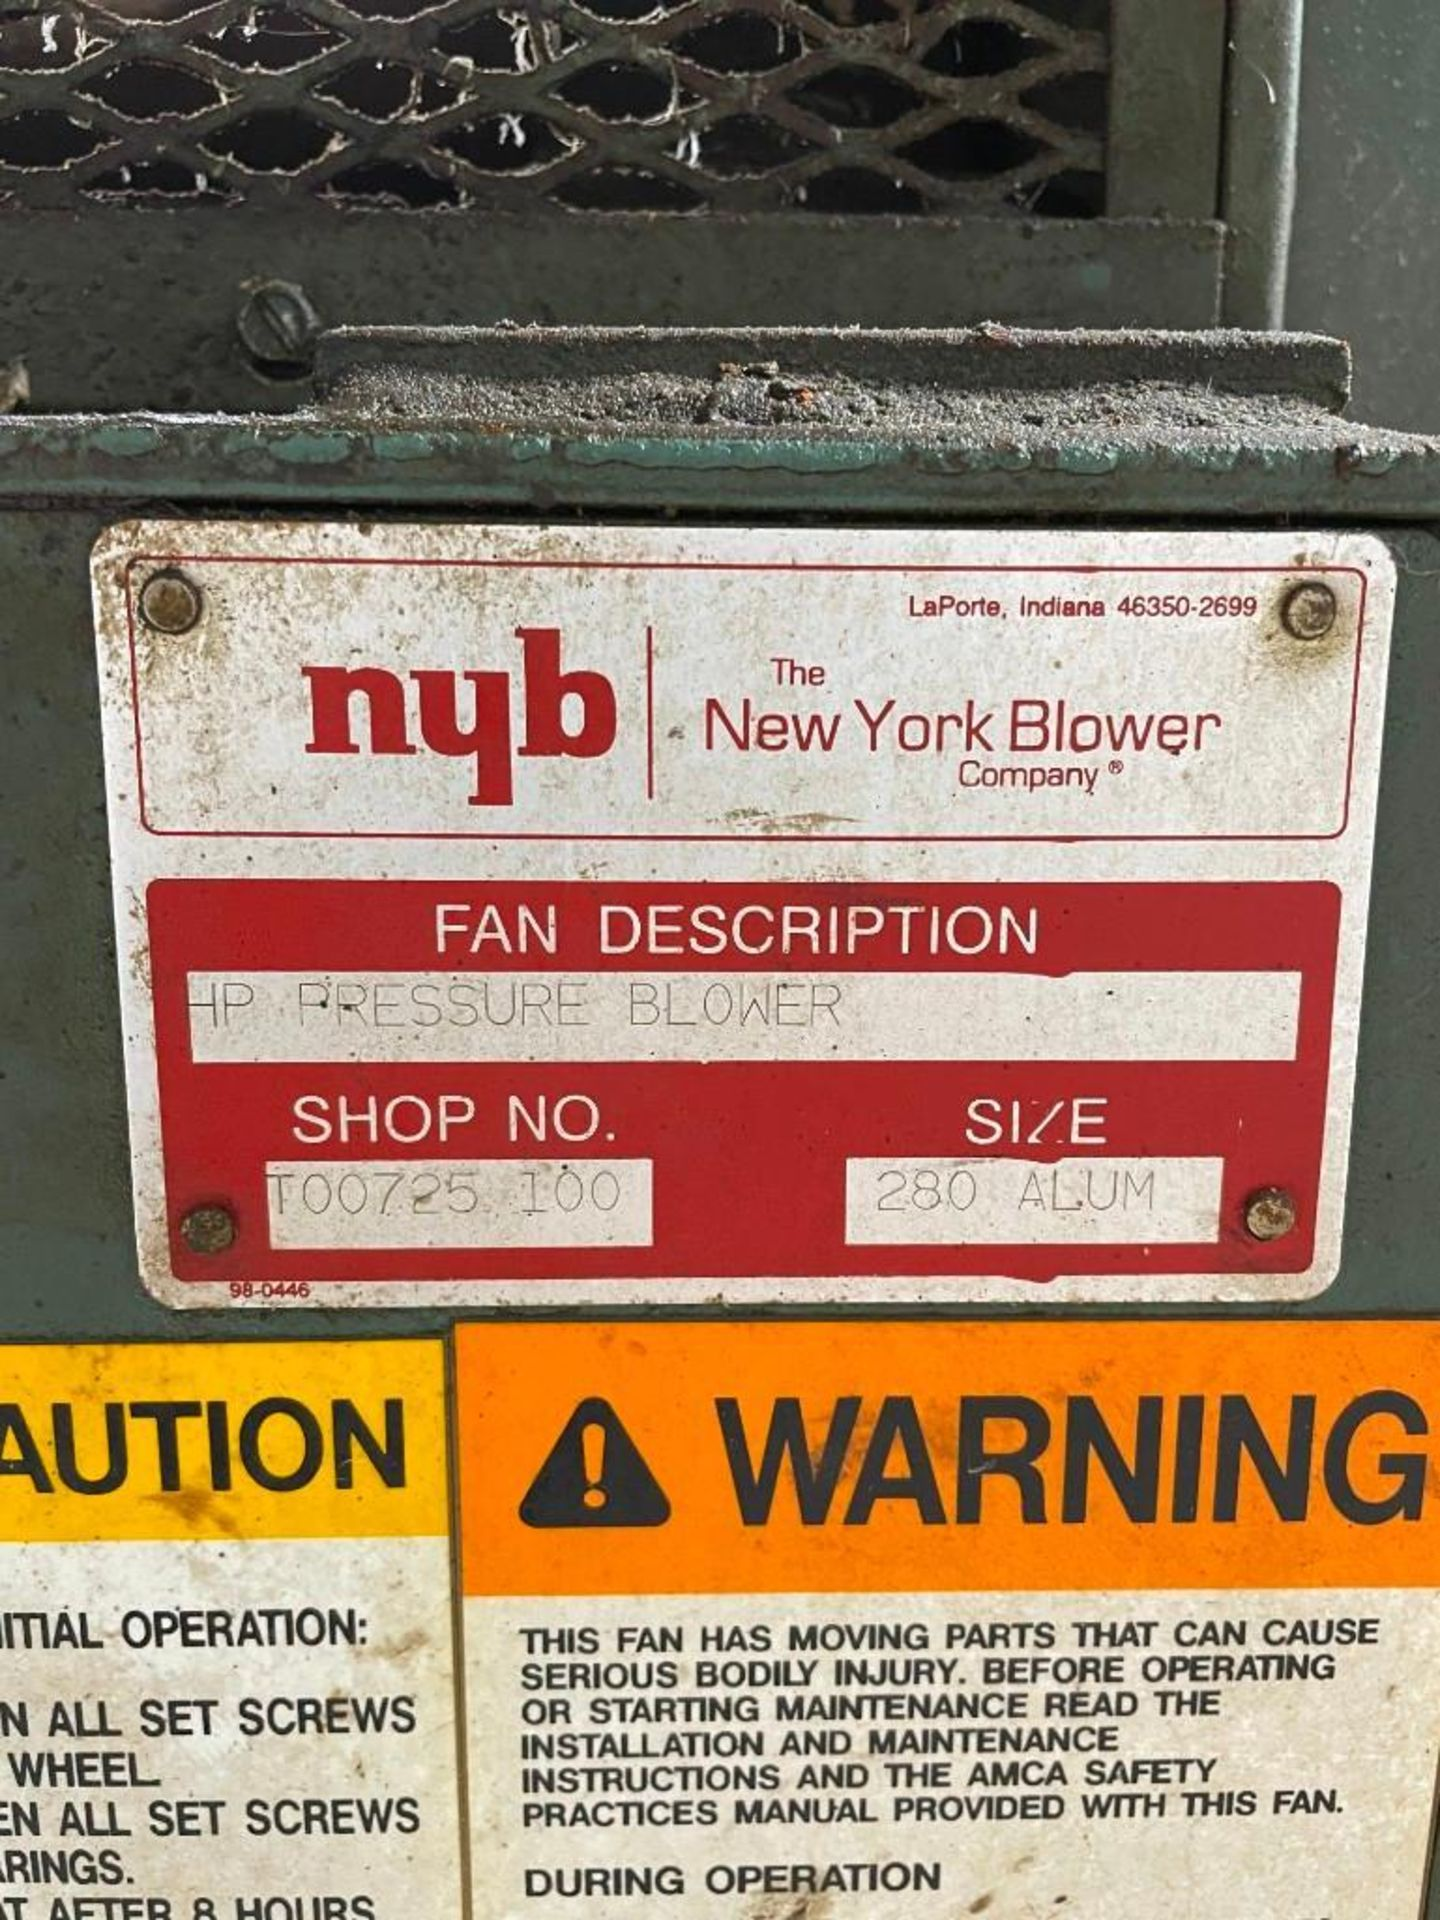 New York 60 Horsepower Blower with Filter - Image 11 of 11